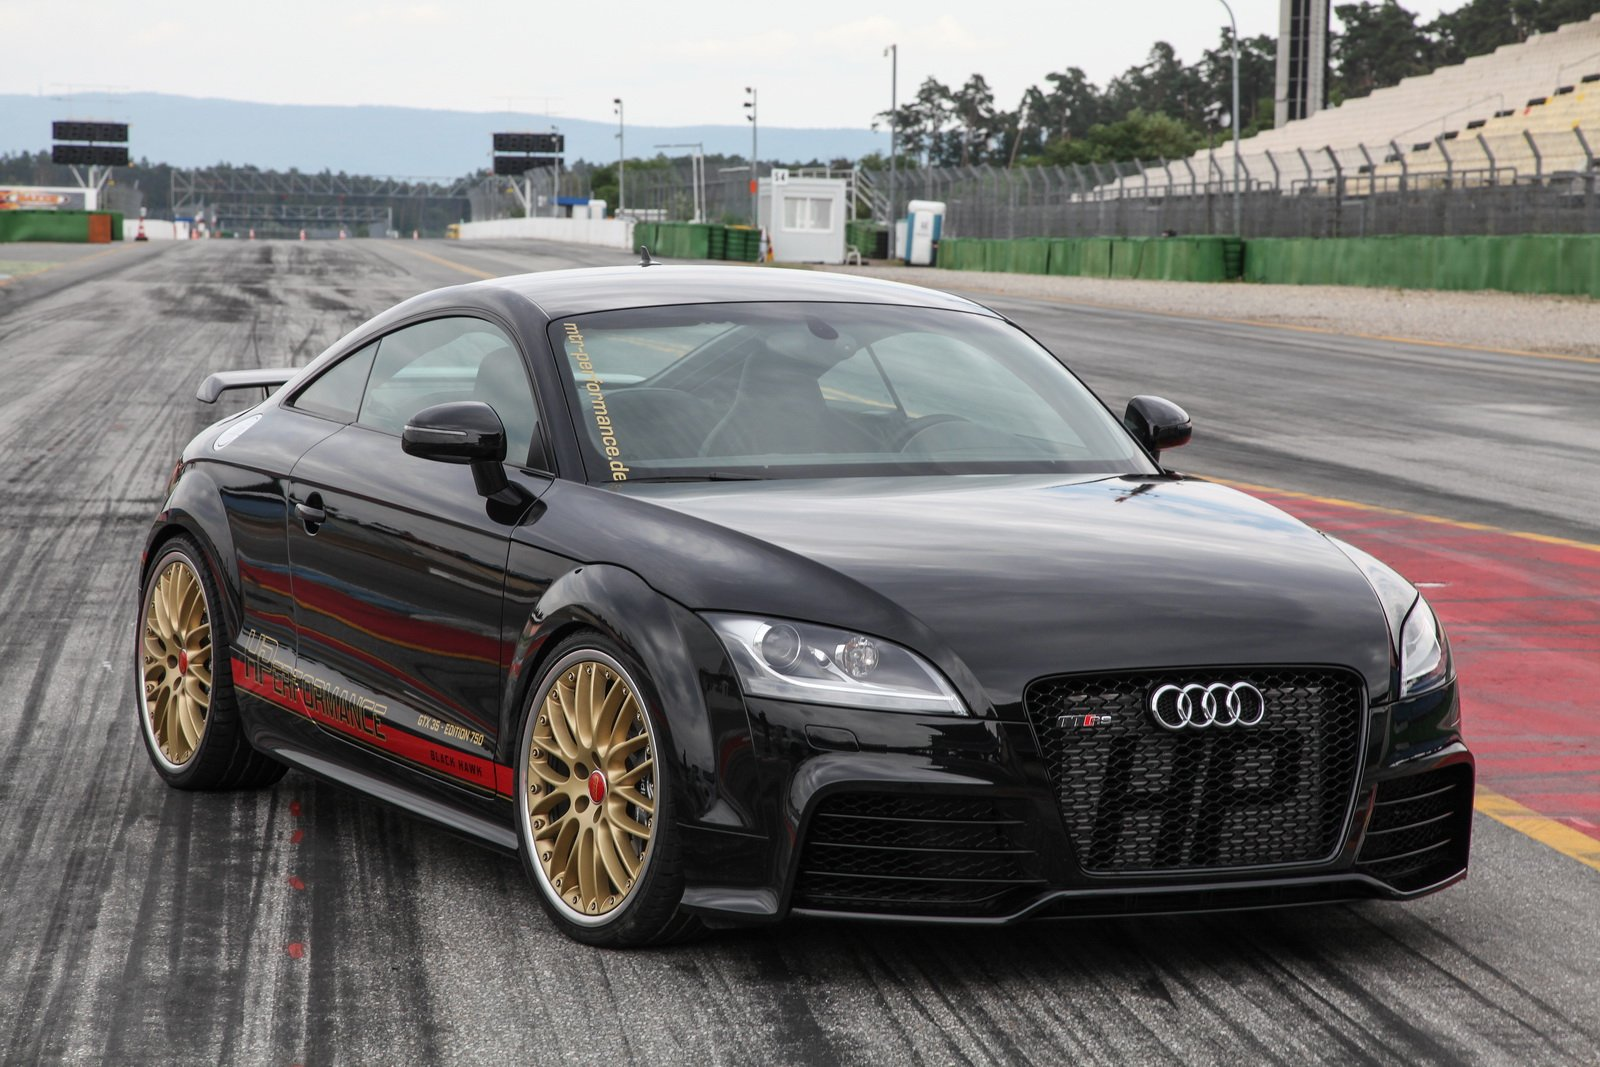 2016 Audi Tt Rs Performance Coupe Cars Modified Wallpaper